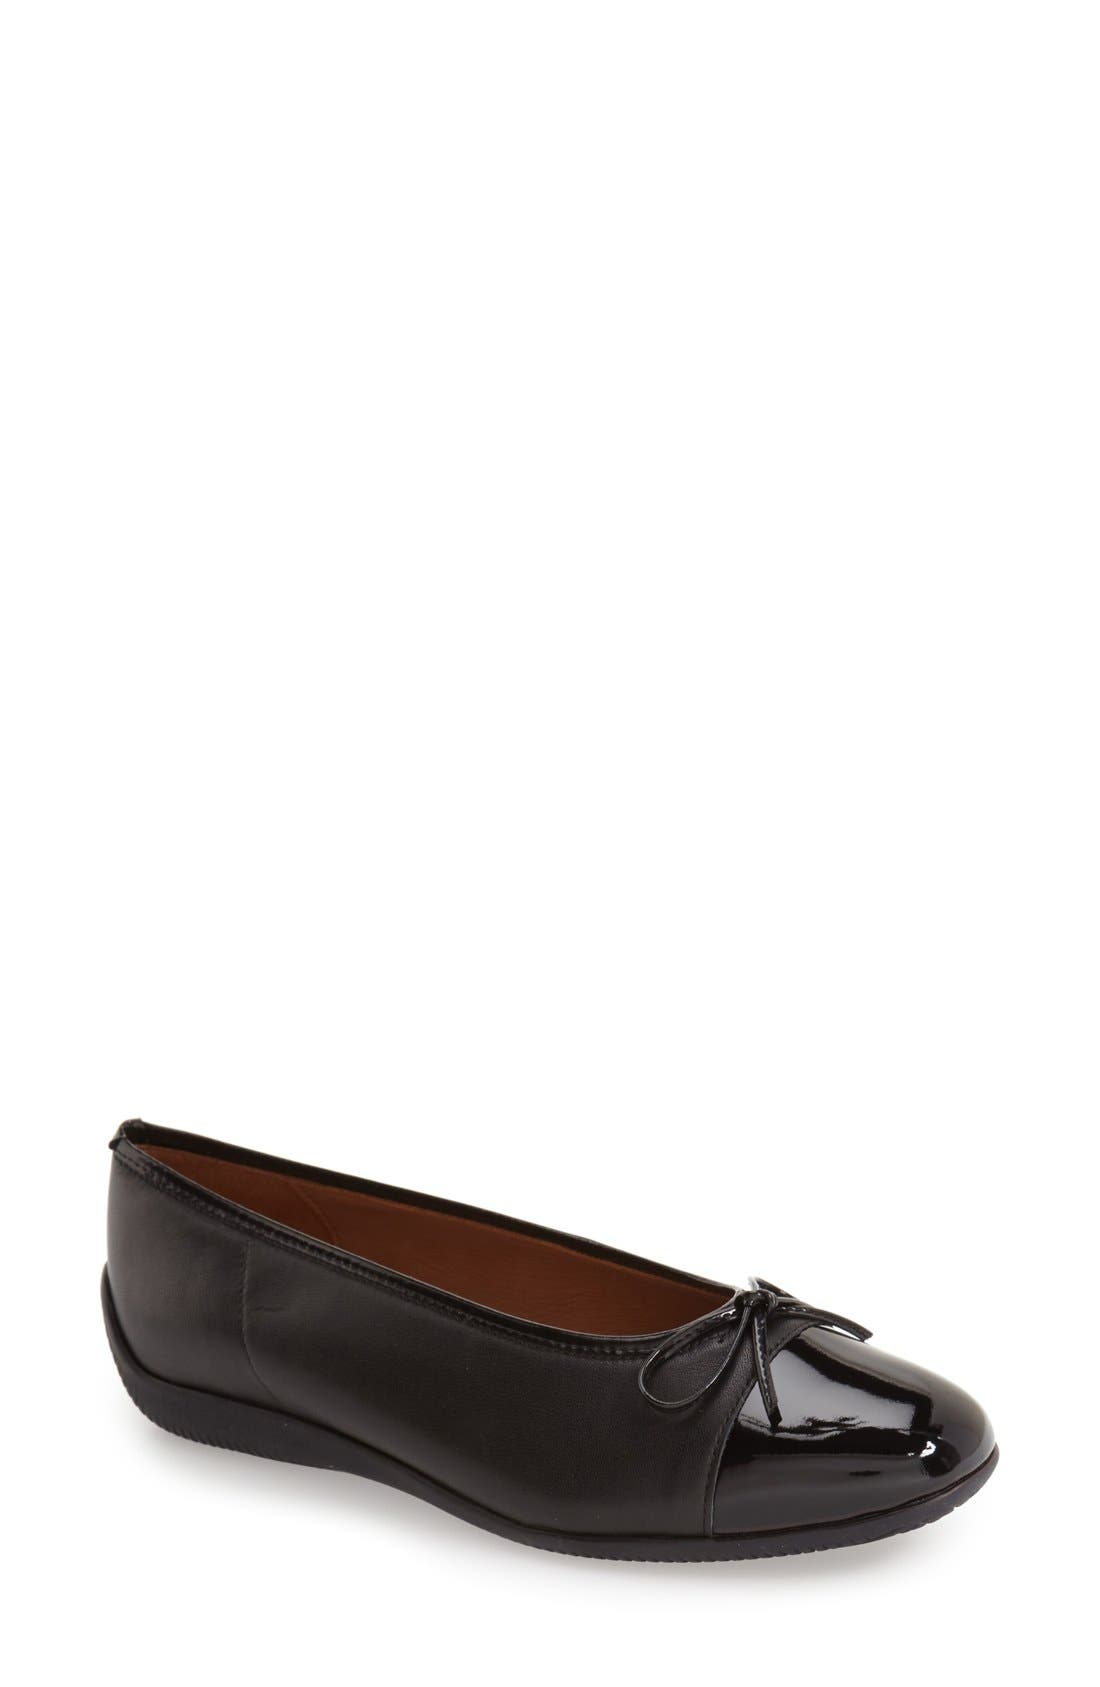 'Bella' Flat,                         Main,                         color, BLACK LEATHER